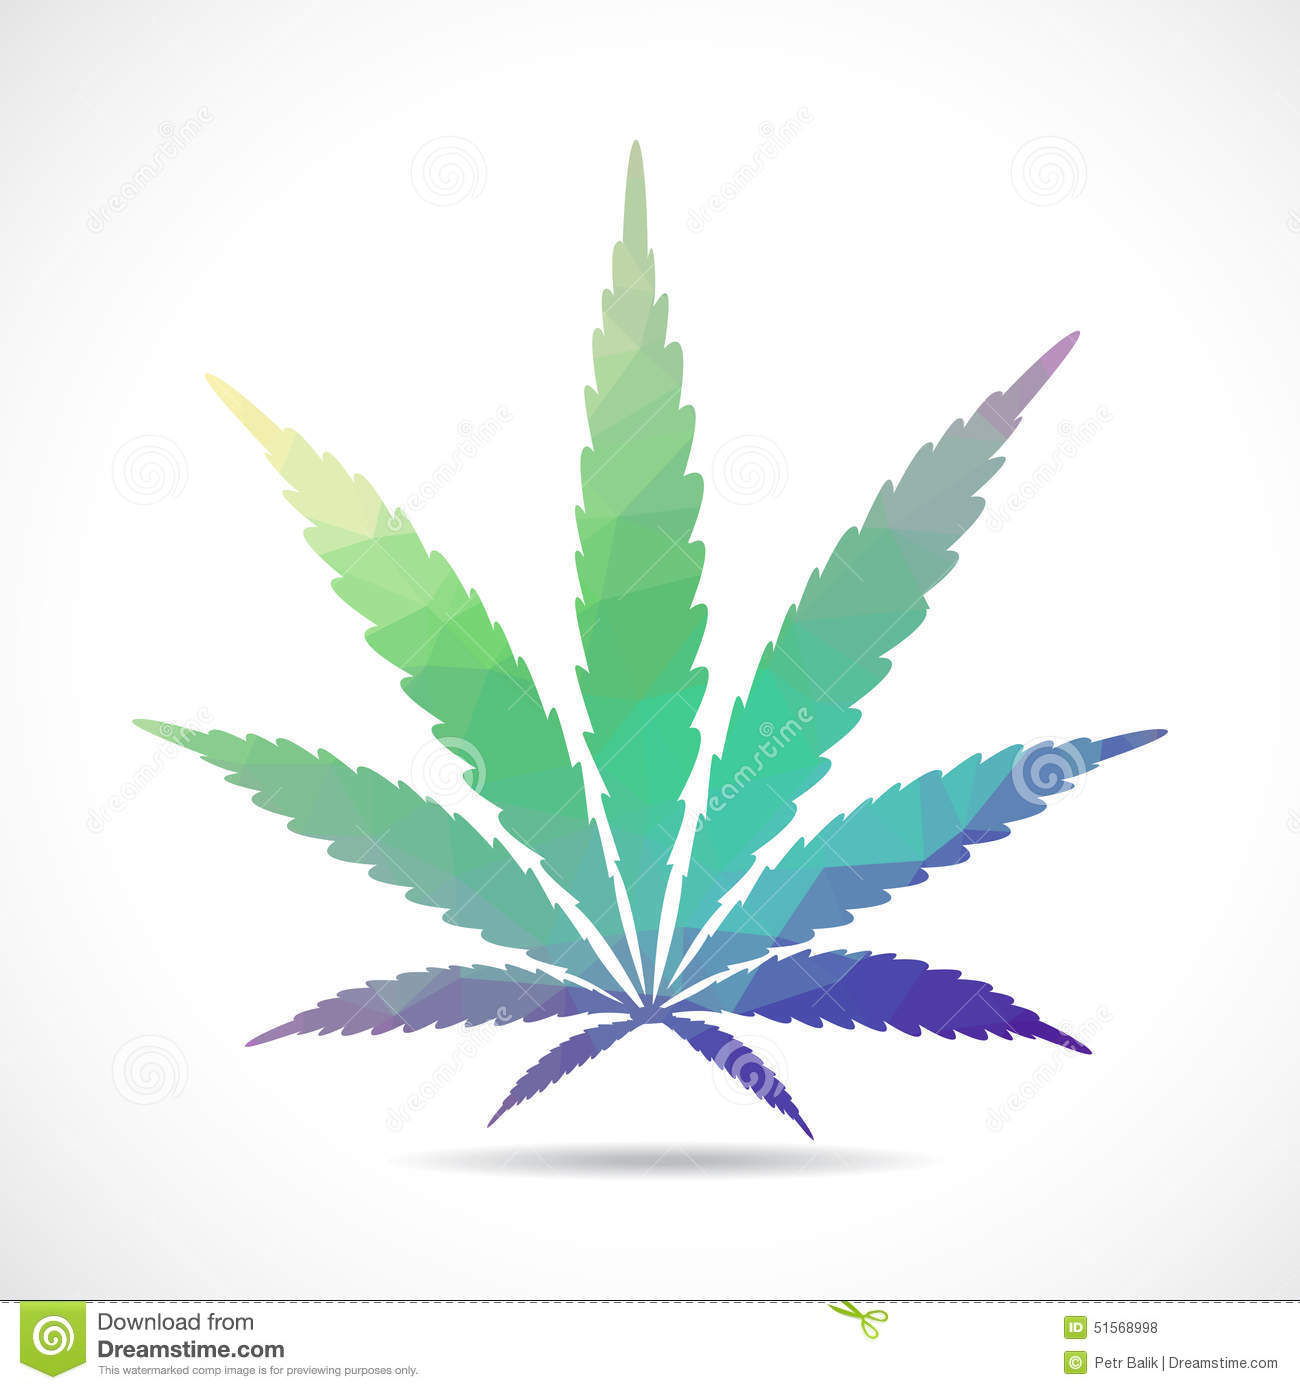 Feuille de cannabis illustration polygonale illustration stock illustration du m dical - Feuille cannabis dessin ...